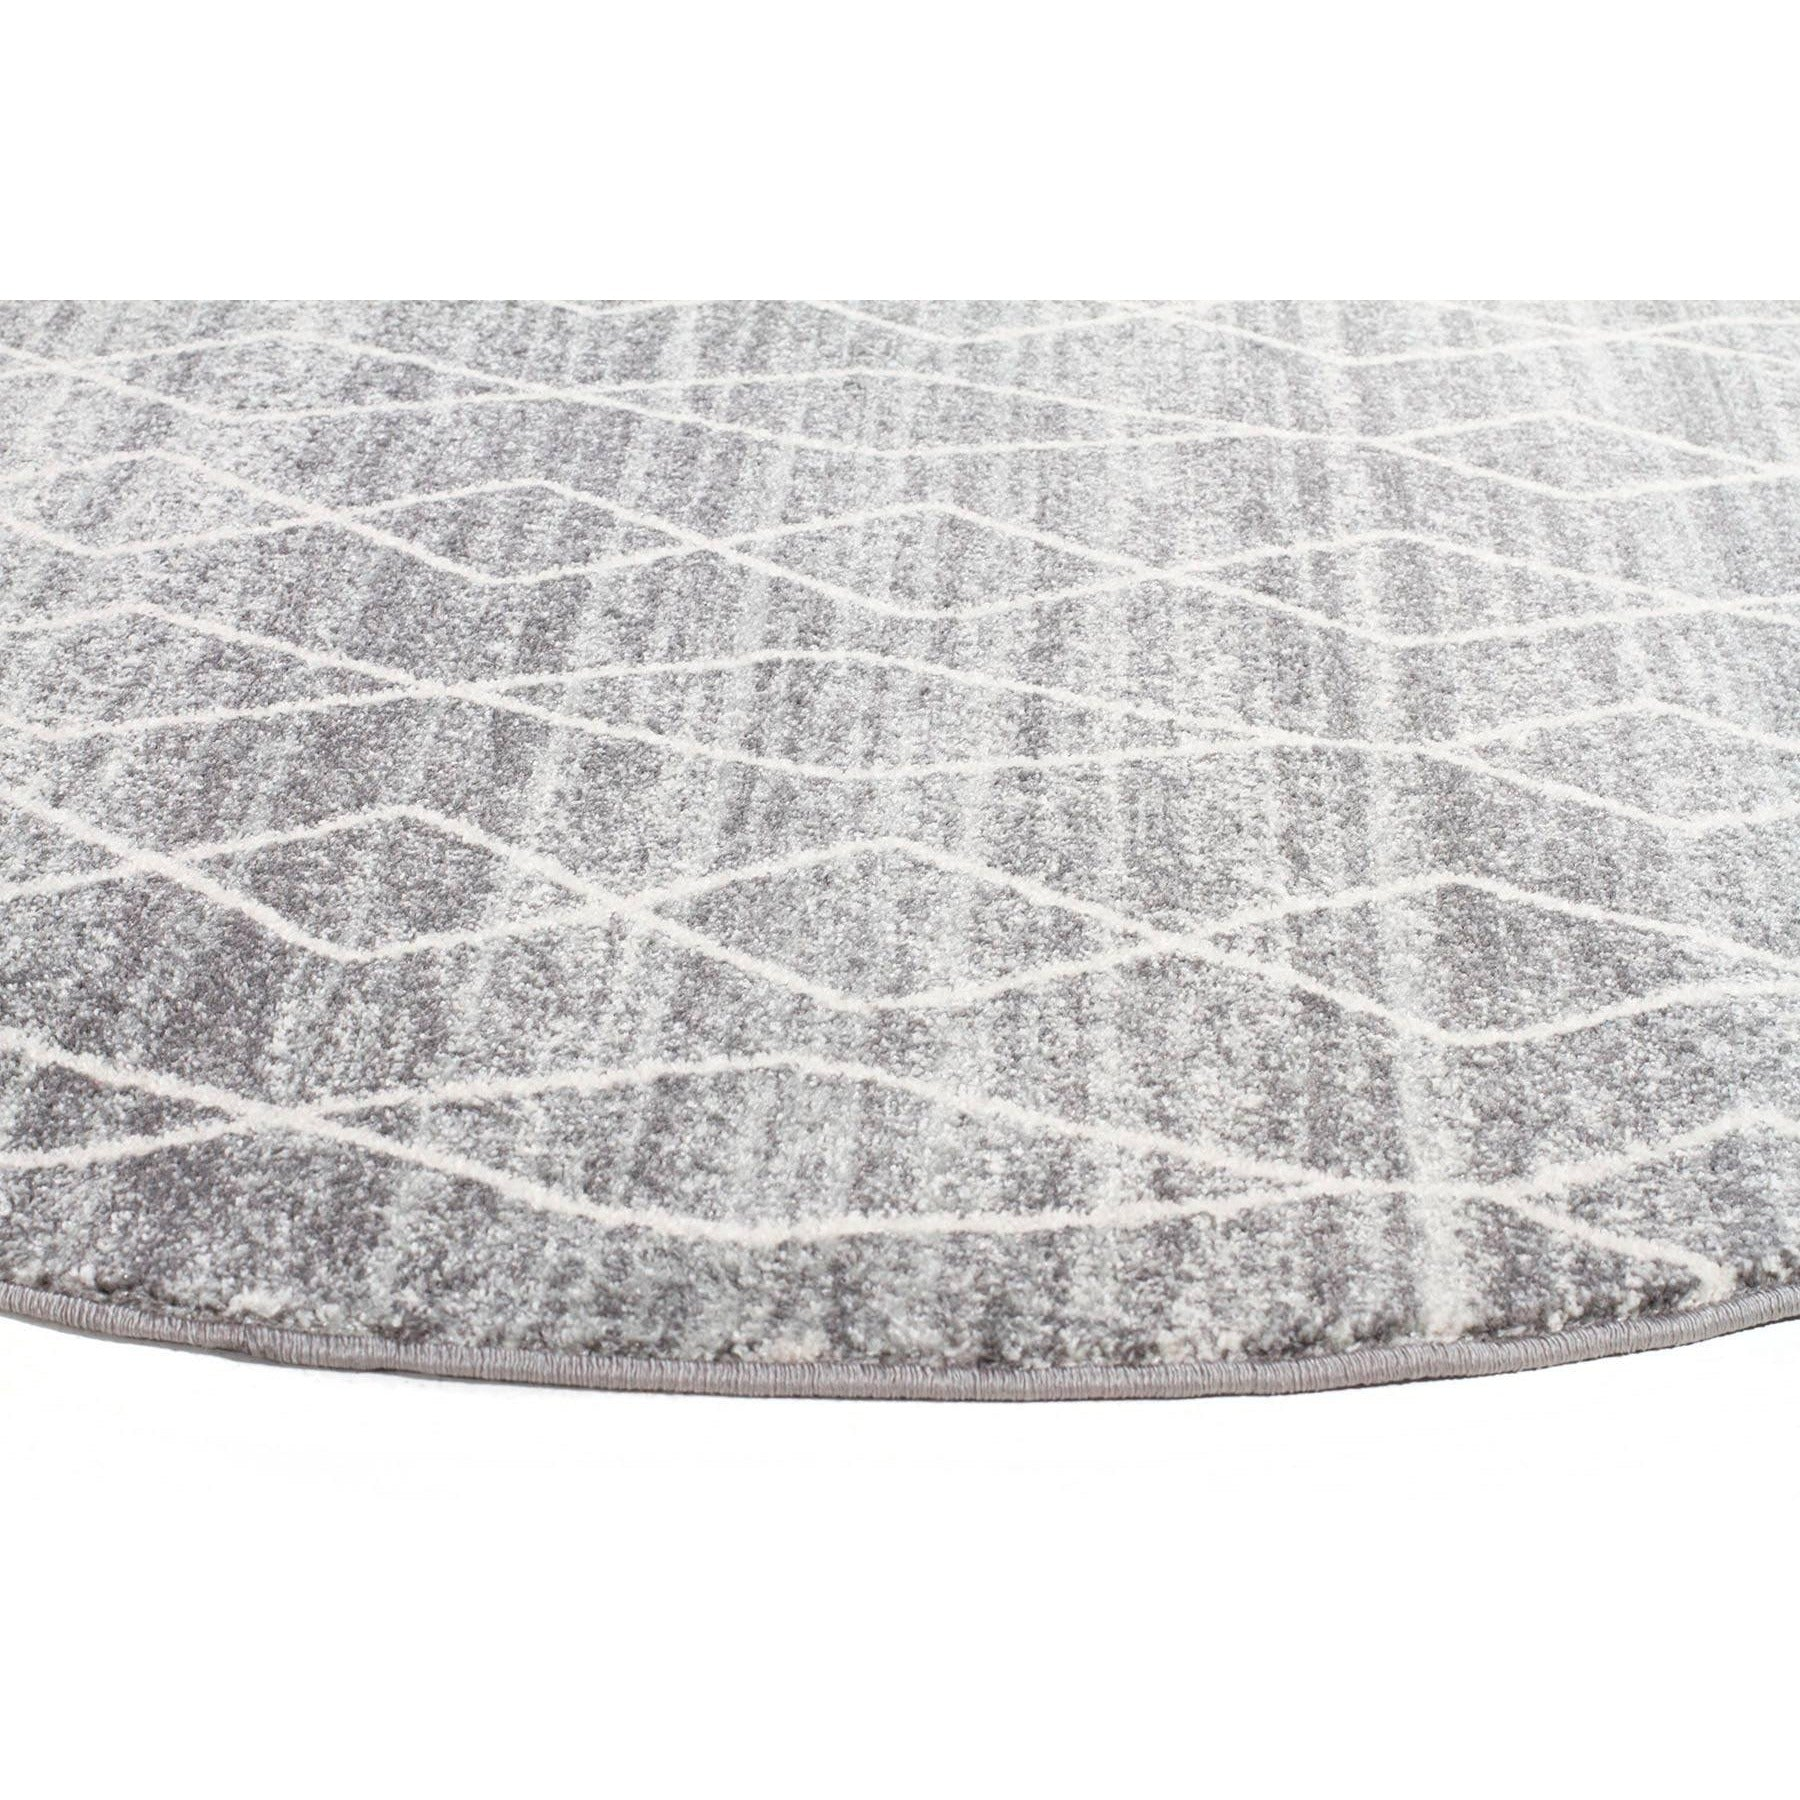 Amirtha Transitional Grey Patterned Round Designer Rug